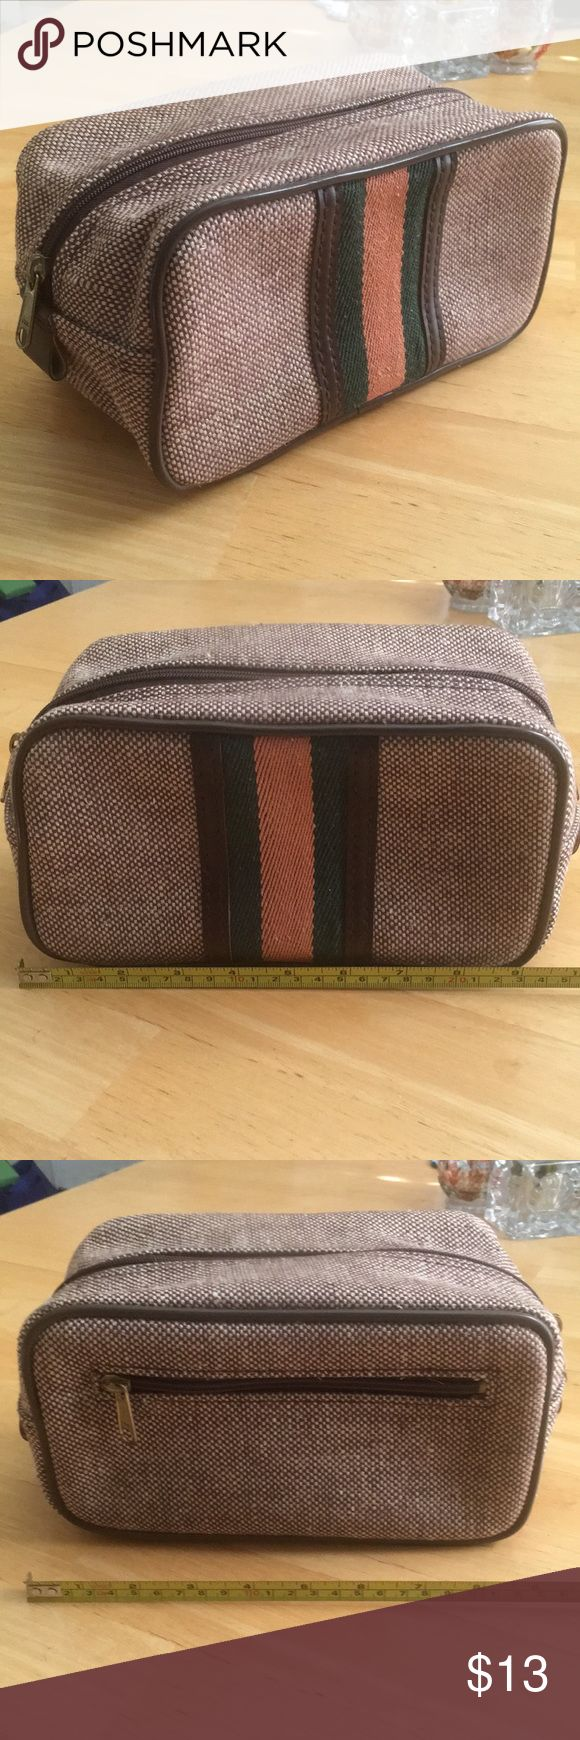 Make up toiletry bag vintage Make up / toiletry bag  Appears to be vintage  Dura…